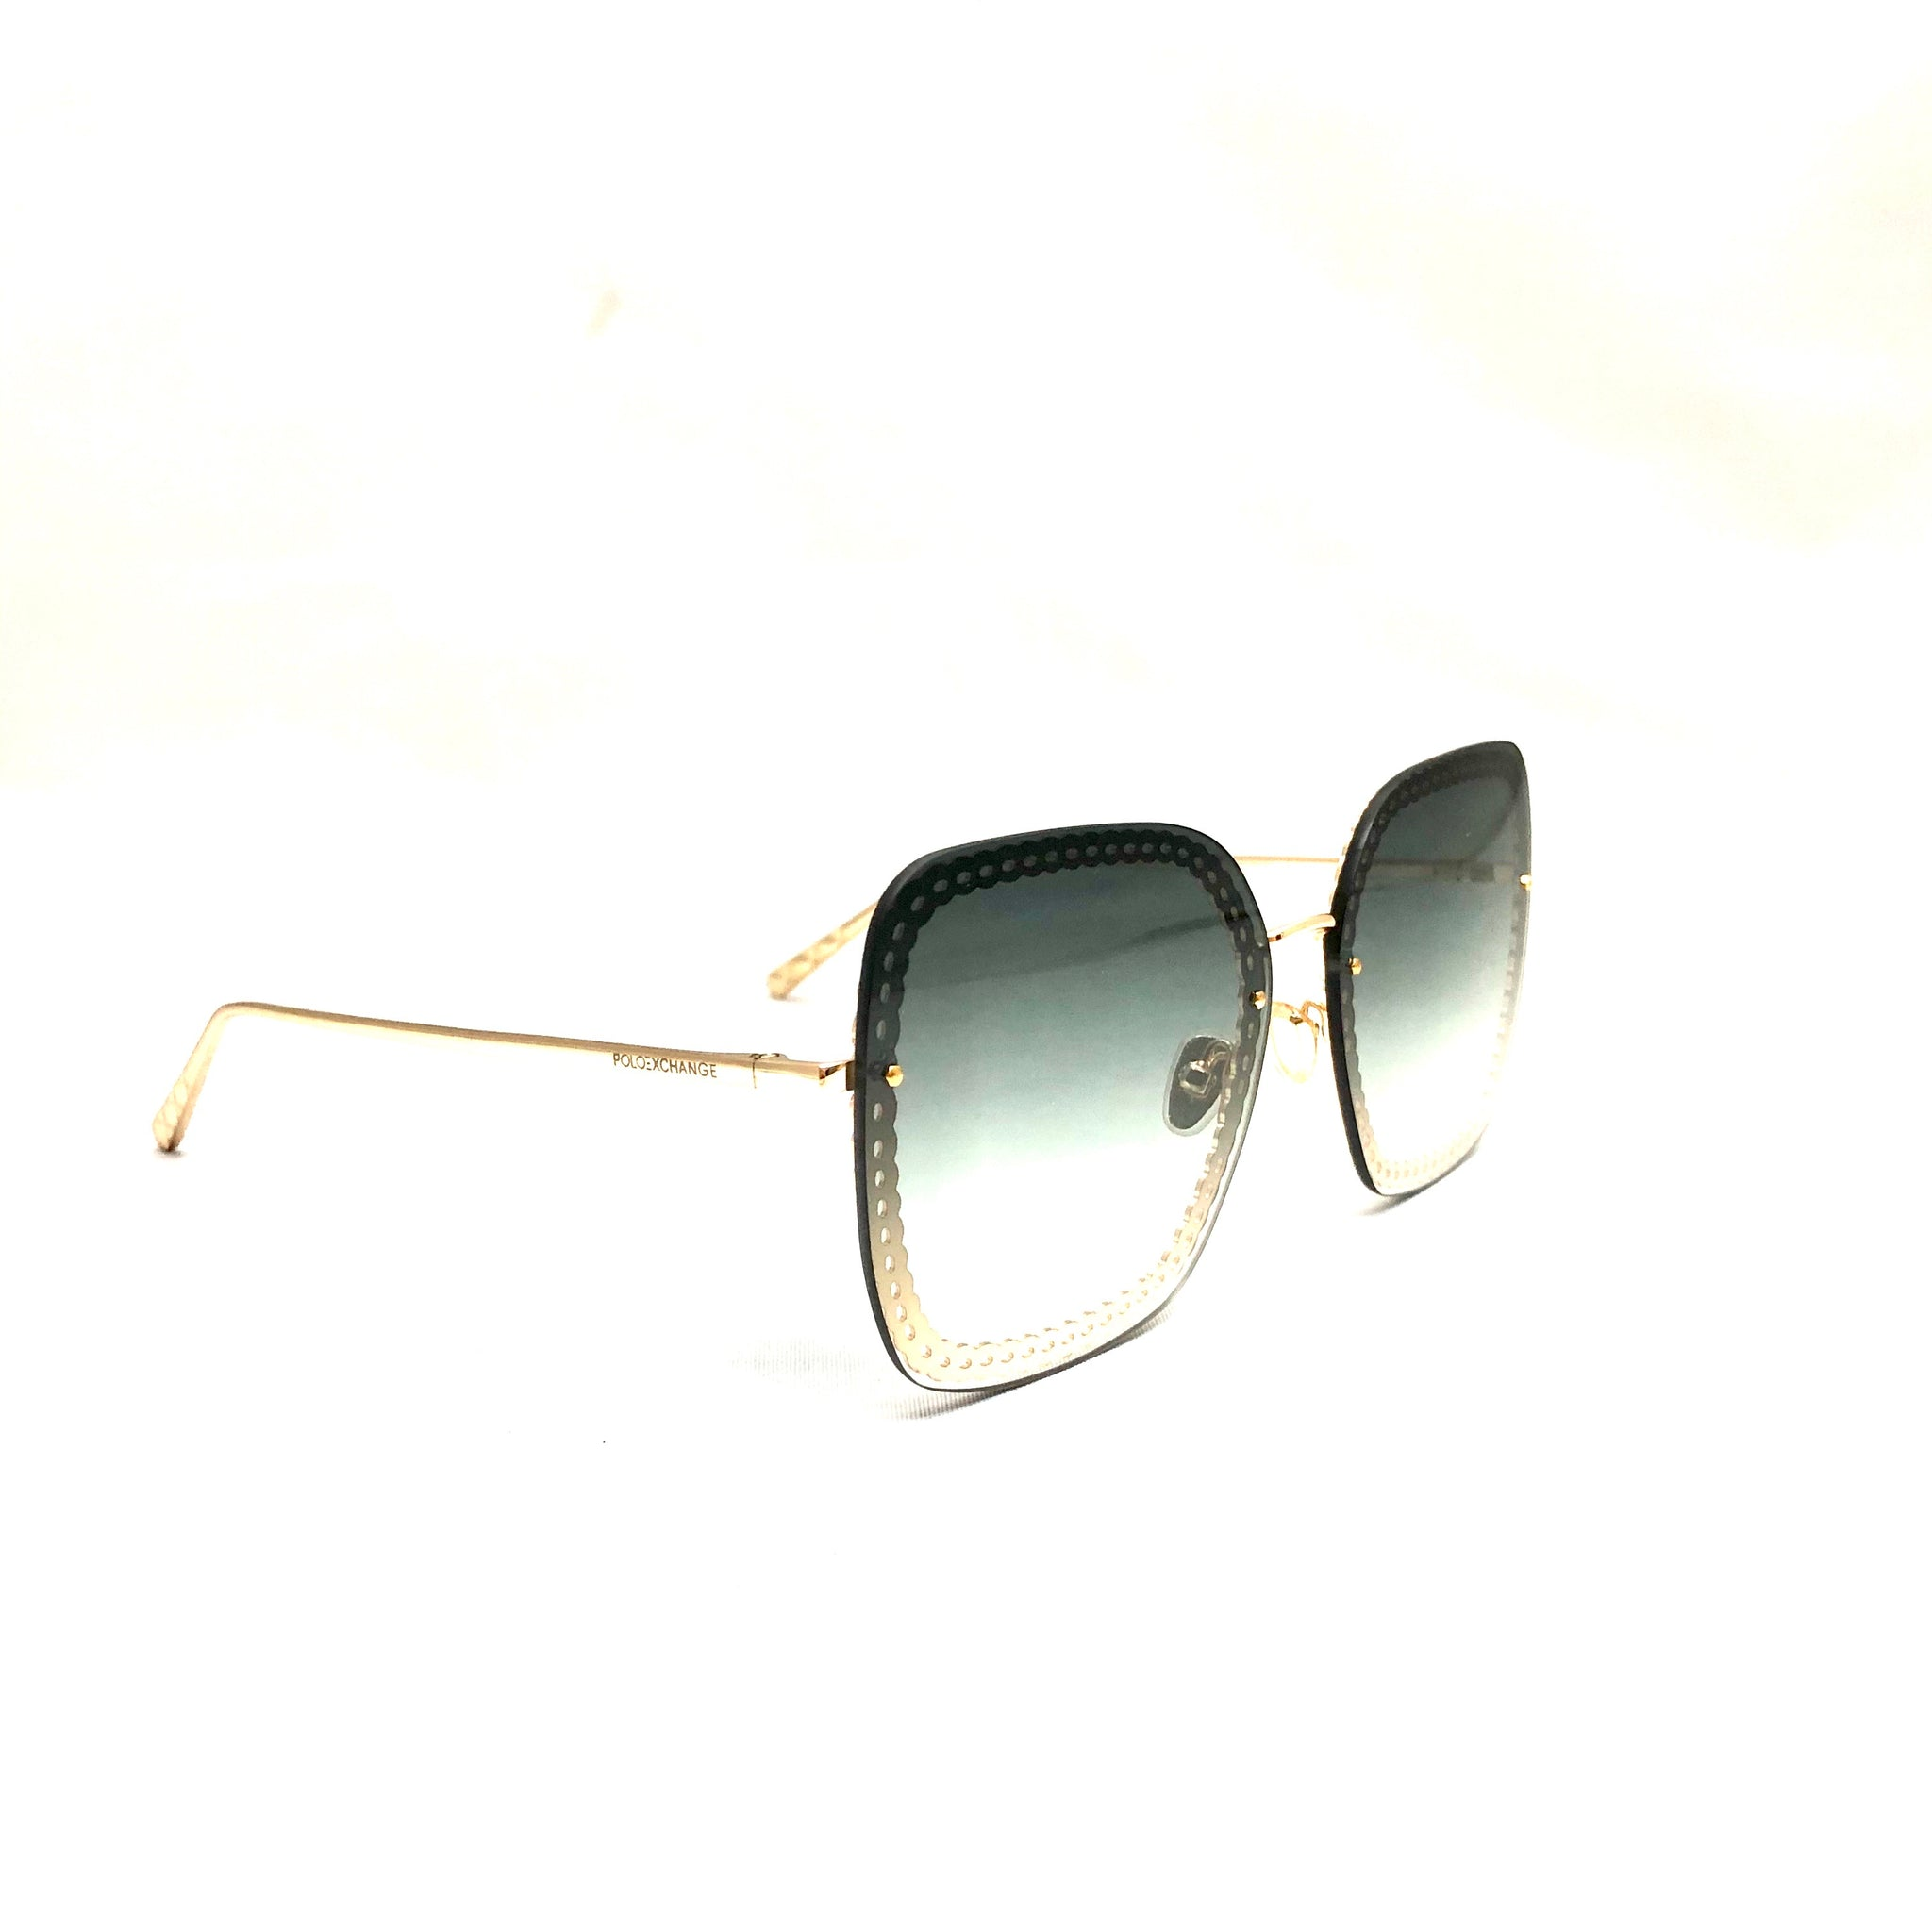 Polo Exchange Sunglasses